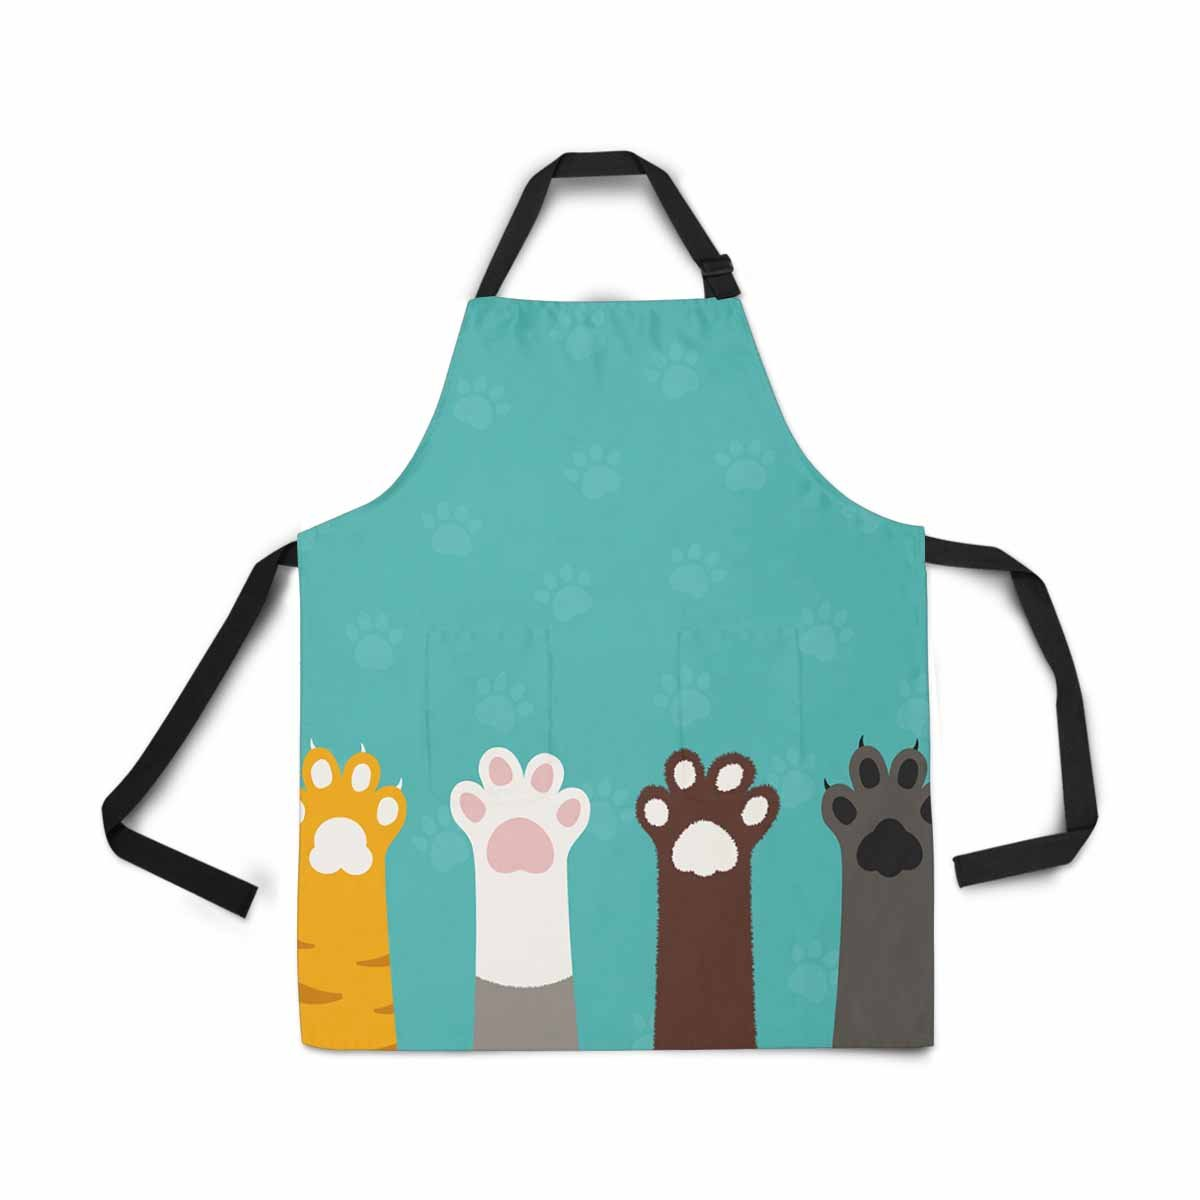 InterestPrint Cat Paws Legs Dog Paw Cute Animal Cartoon Apron for Women Men Girls Chef with Pockets, Adjustable Bib Kitchen Cook Apron for Cooking Baking Gardening Pet Grooming Cleaning